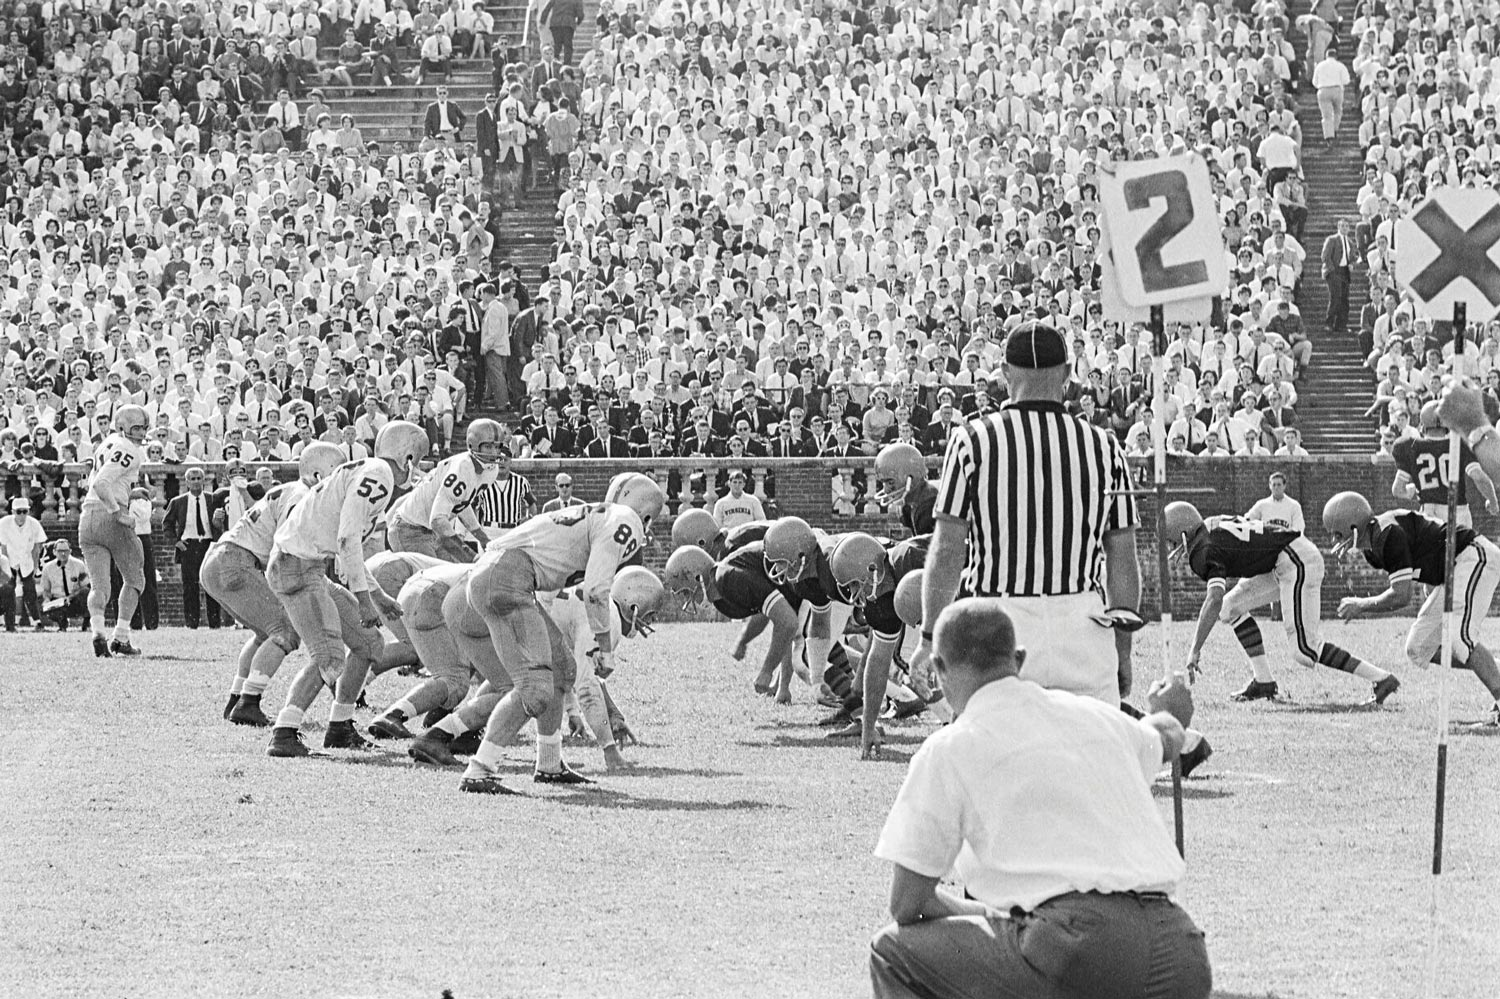 UVA played Virginia Tech in October 1964 at Scott Stadium, with the Cavaliers winning 20-17.